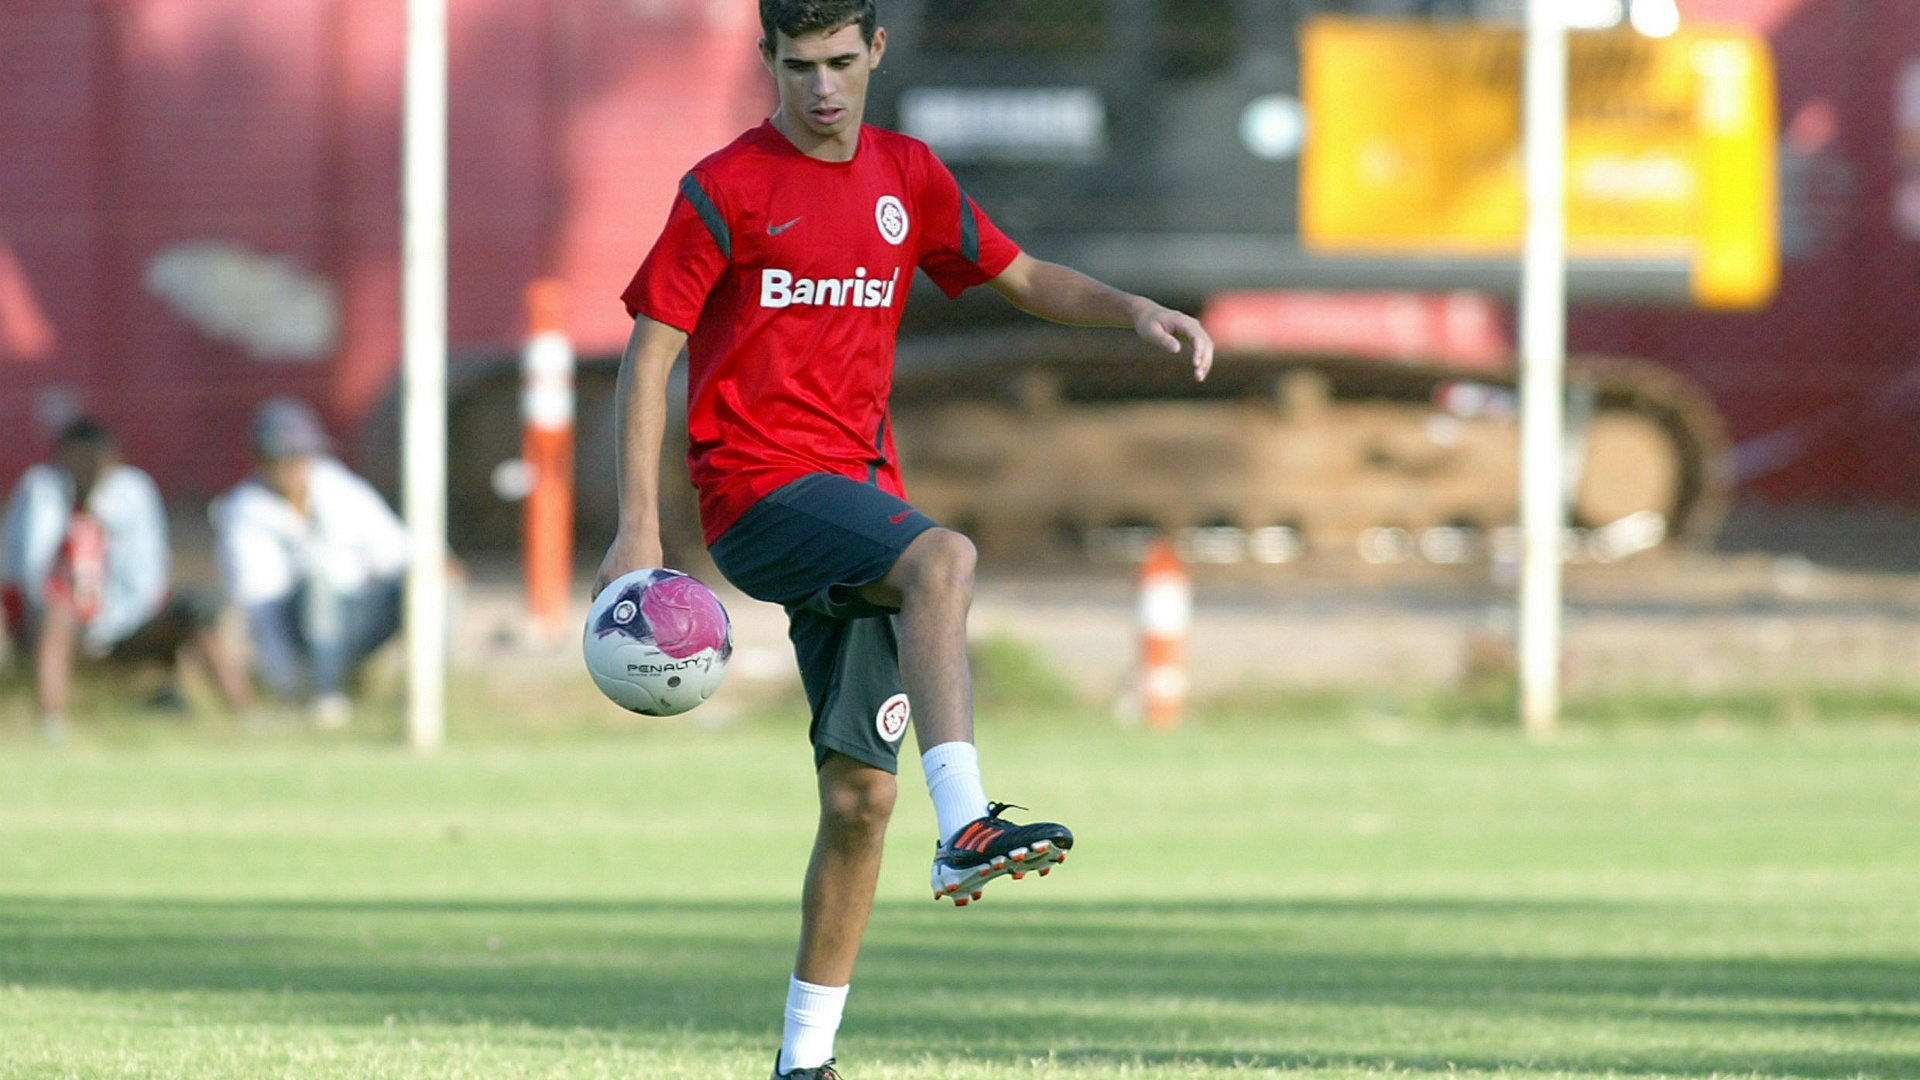 Oscar brinca com a bola em meio ao treinamento do Inter no estdio Beira-Rio (29/03/12)